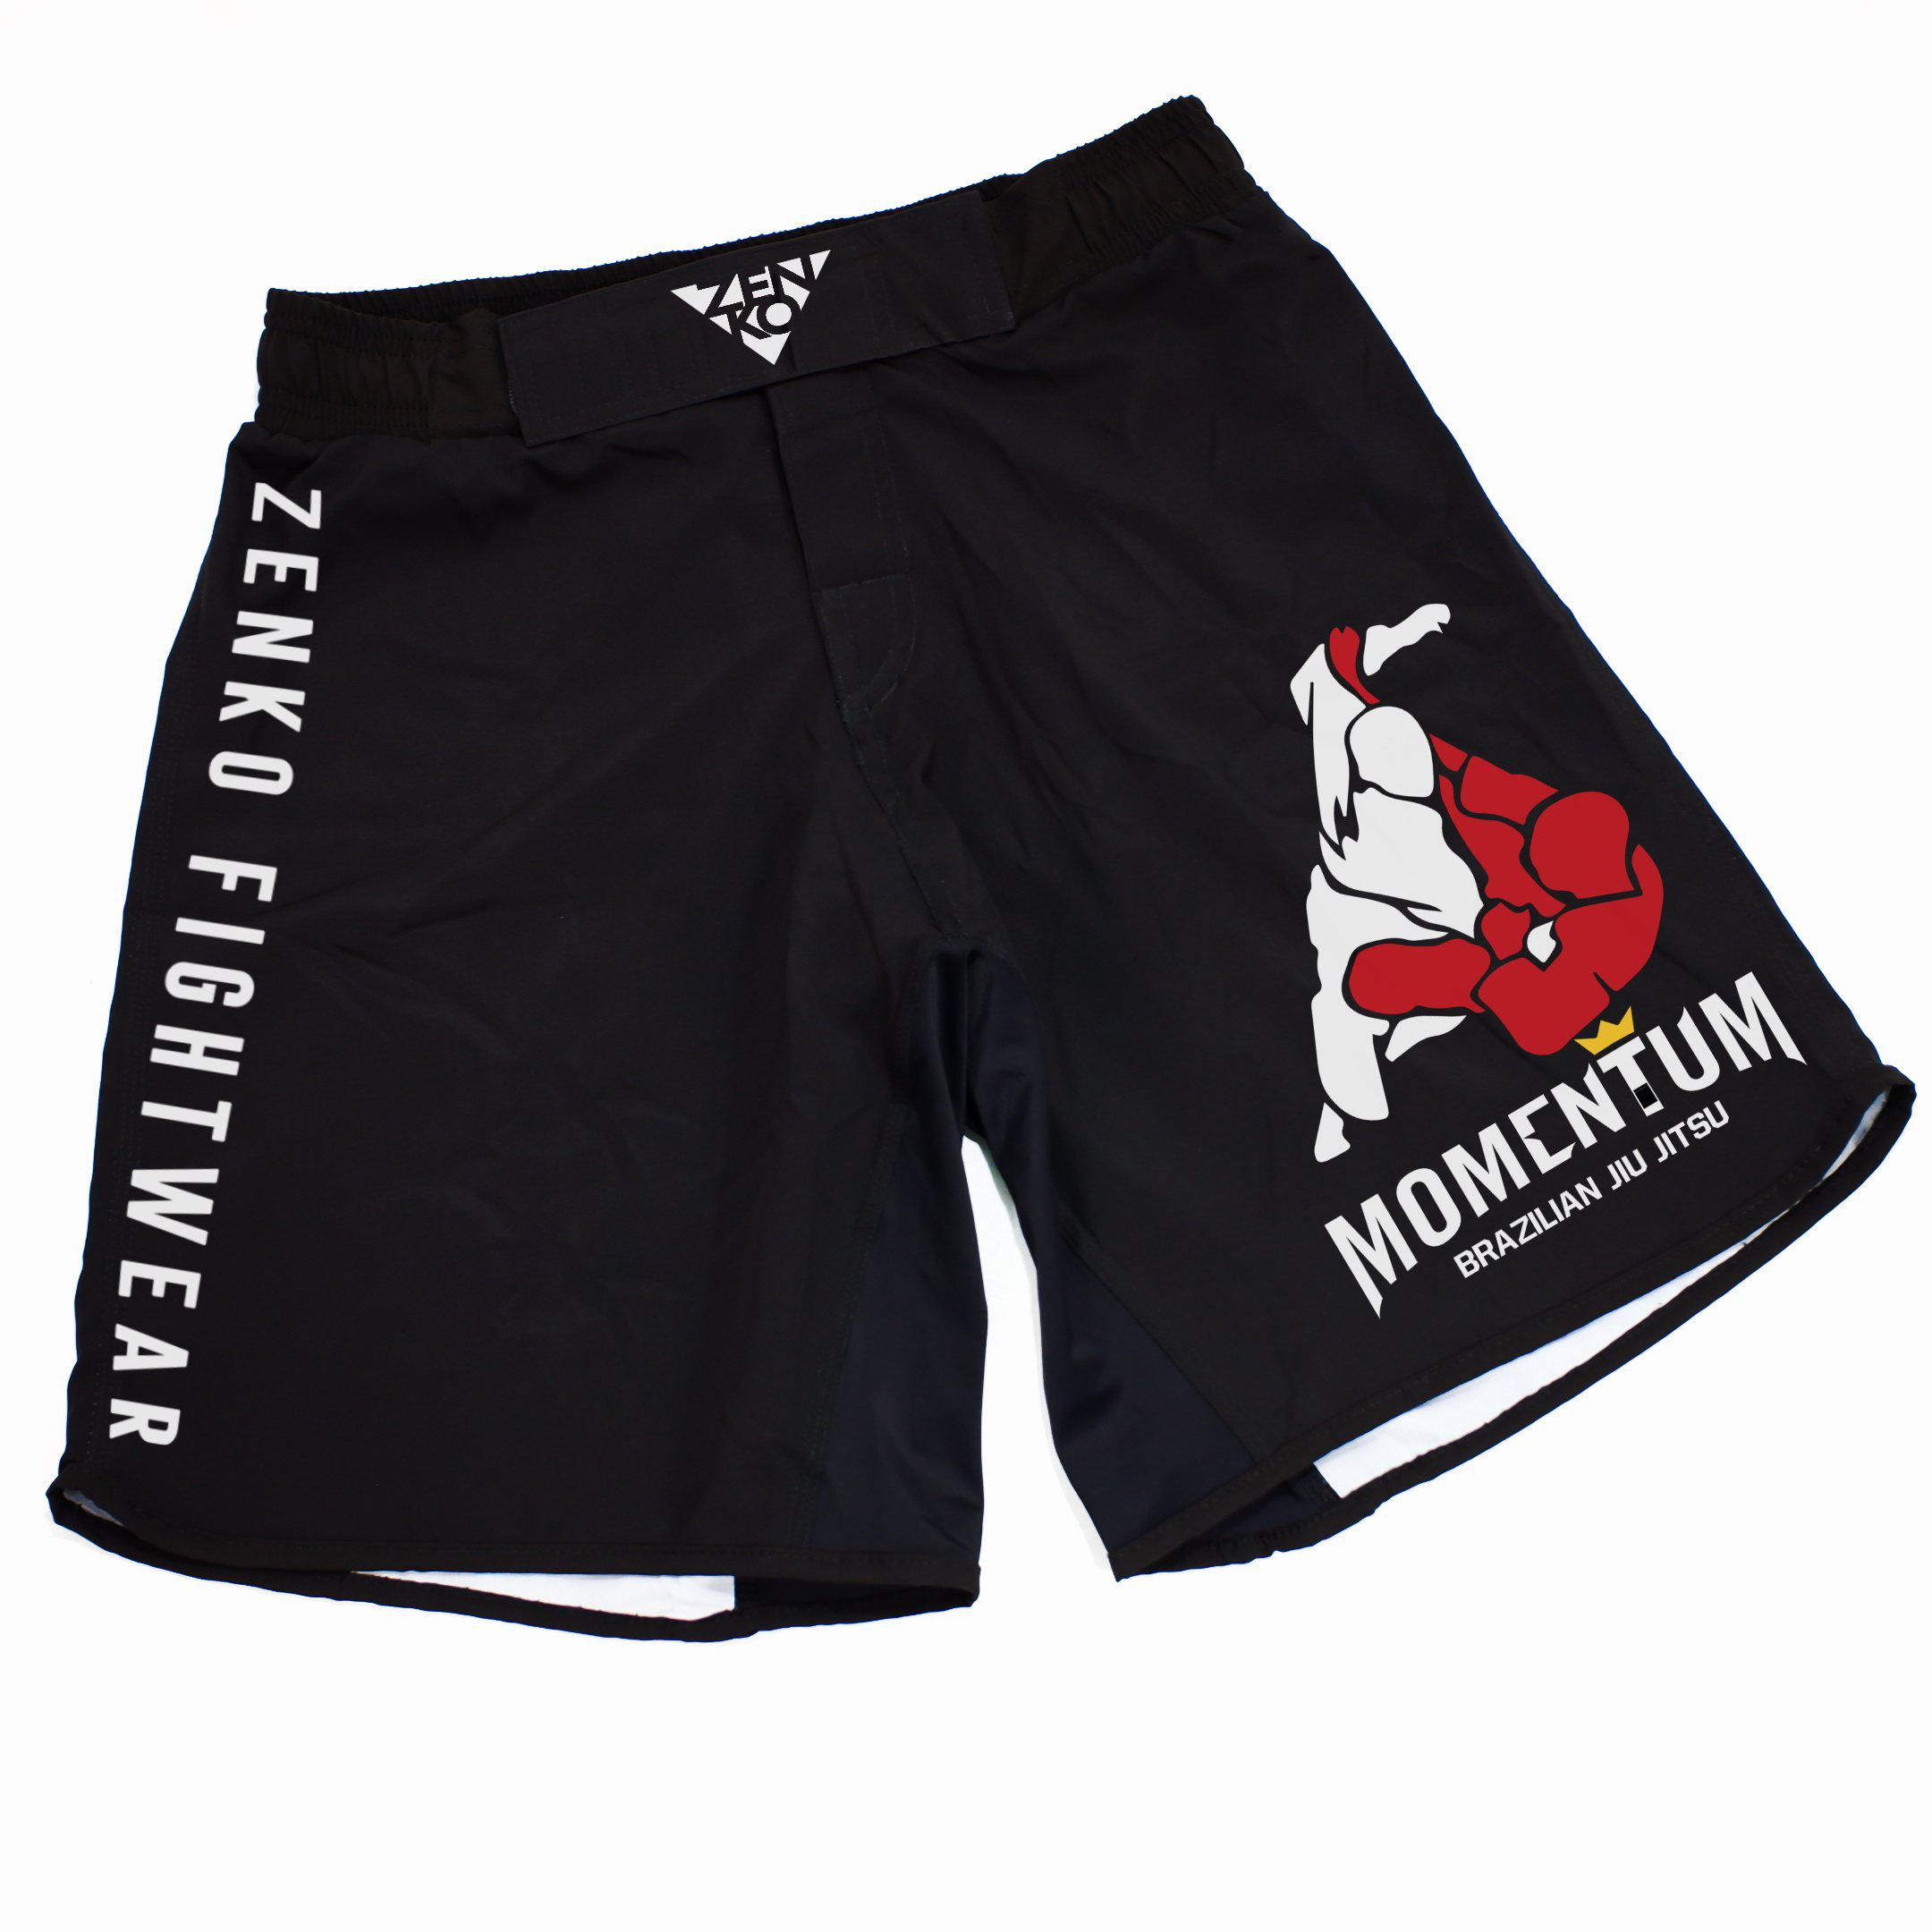 Momentum BJJ Grappling Shorts - Zenko Fightwear